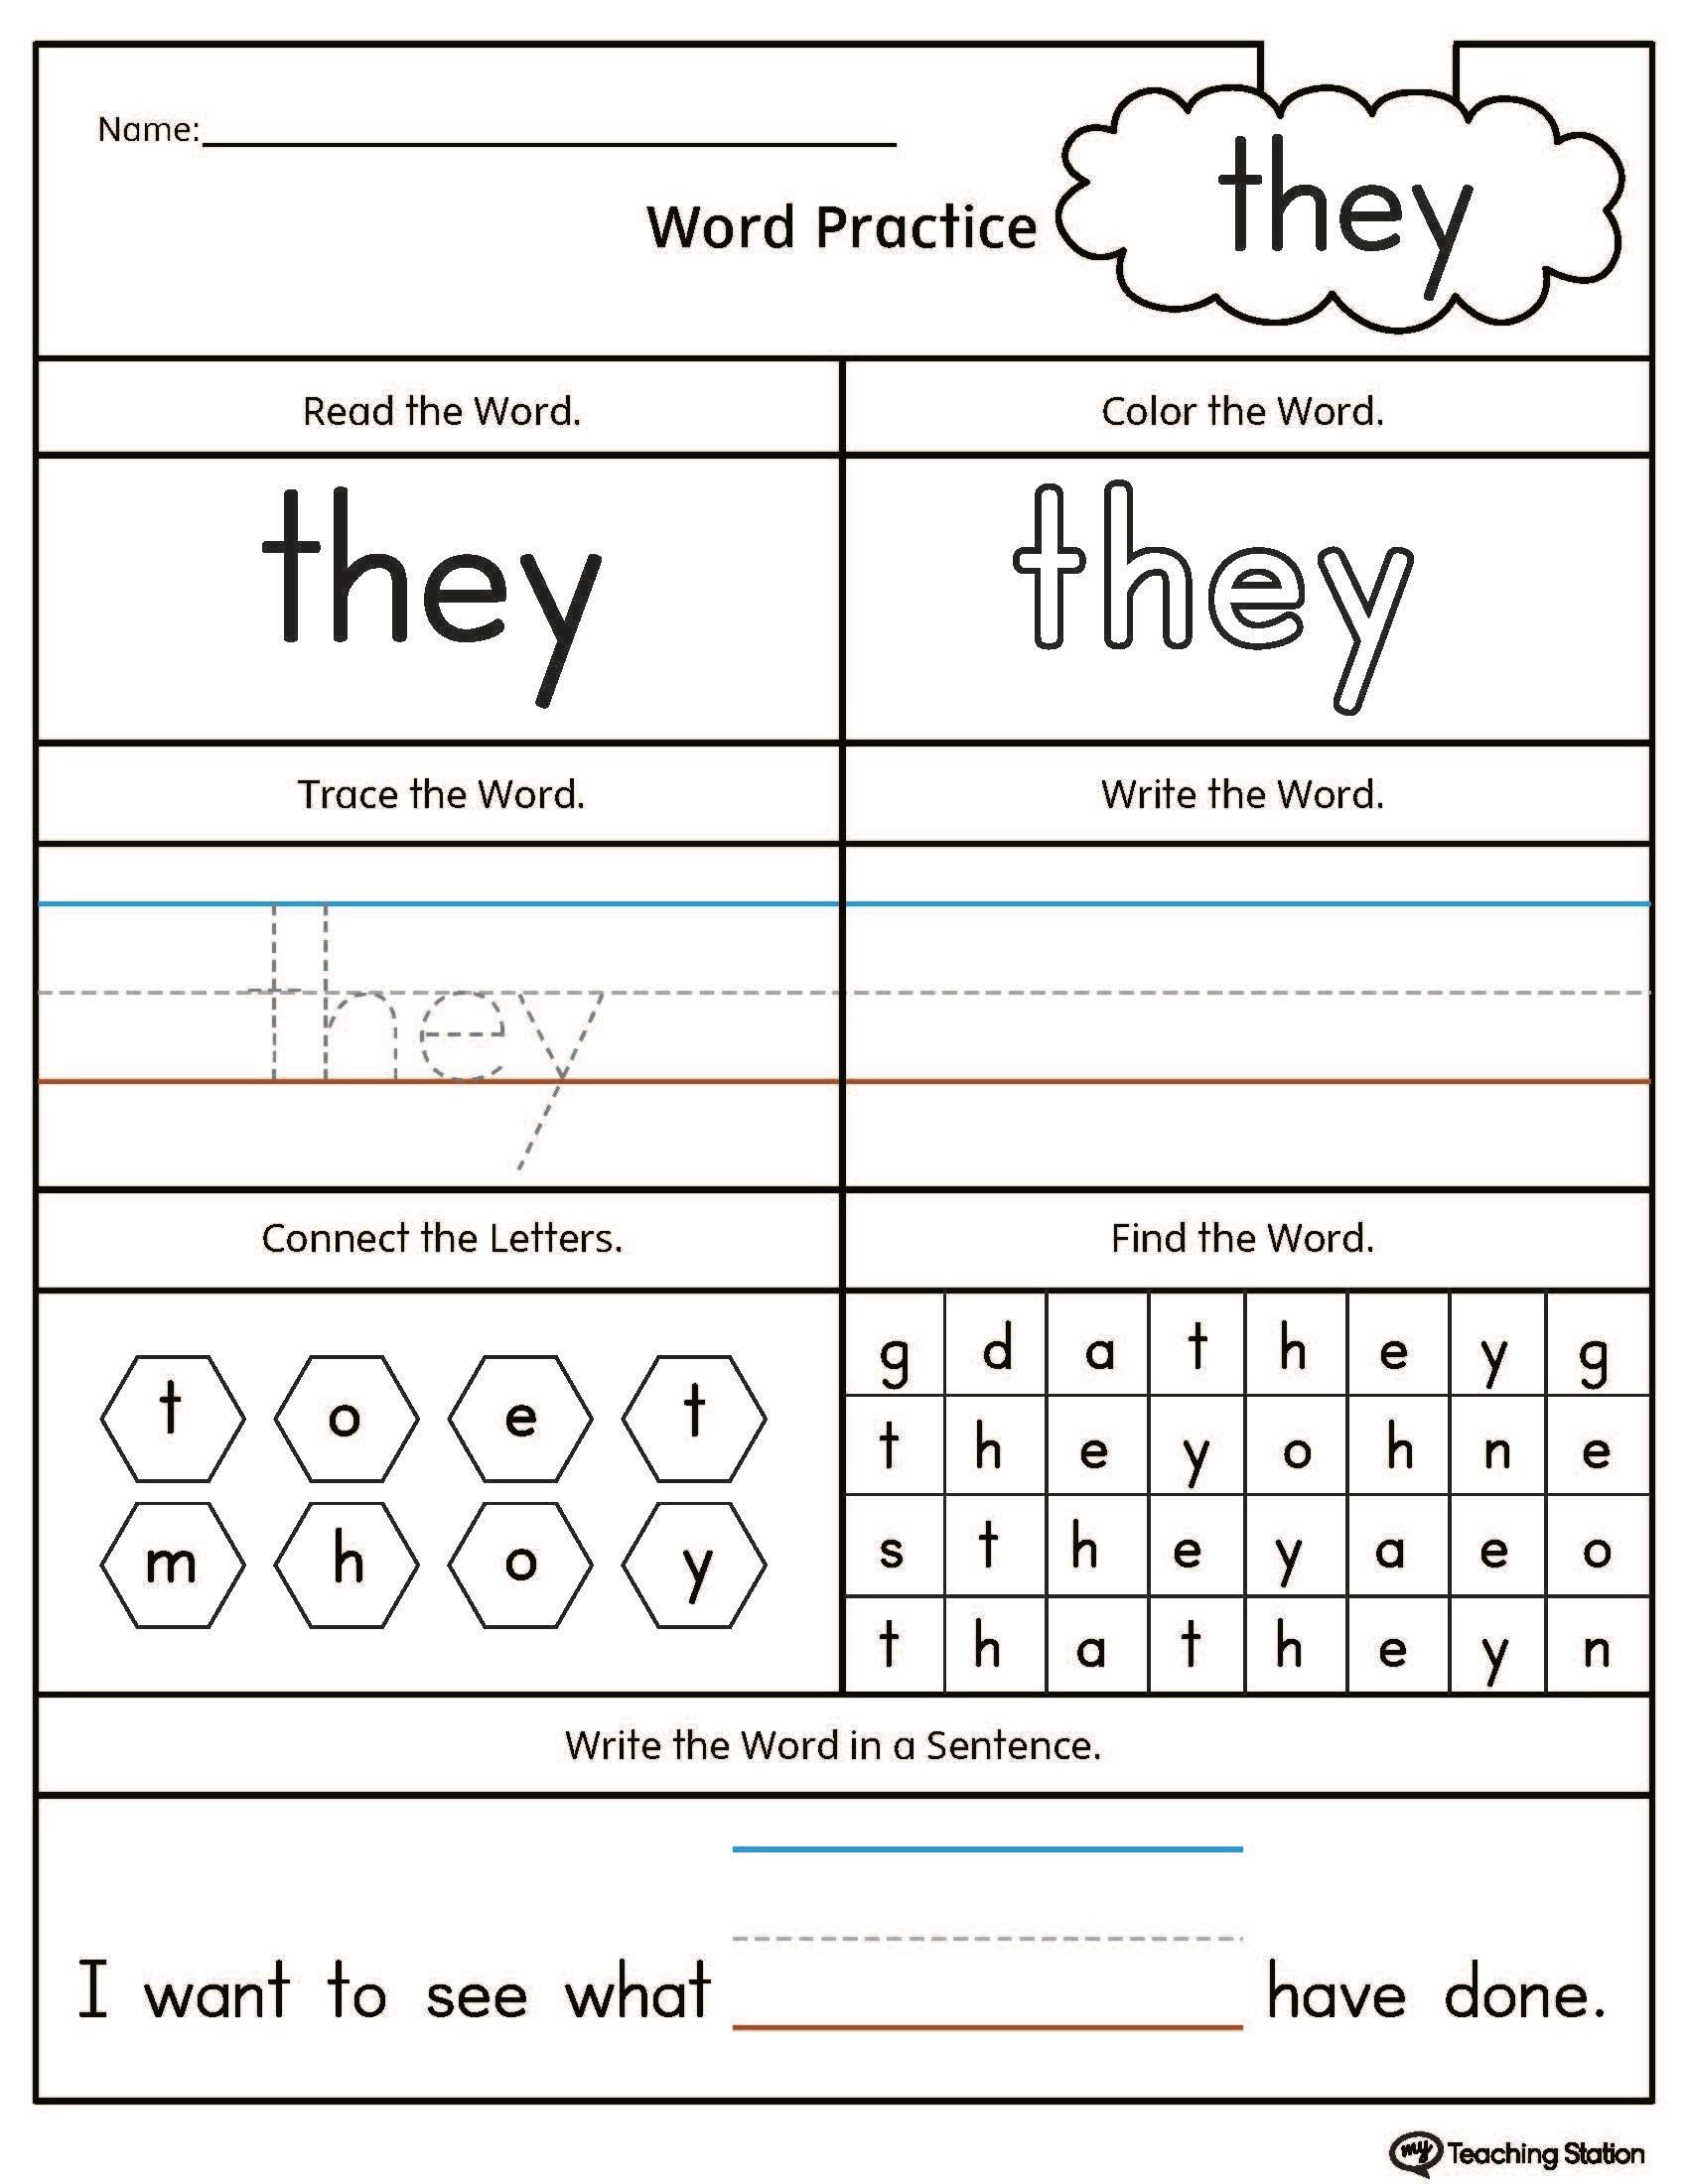 Easy Word Search Worksheet Language Arts